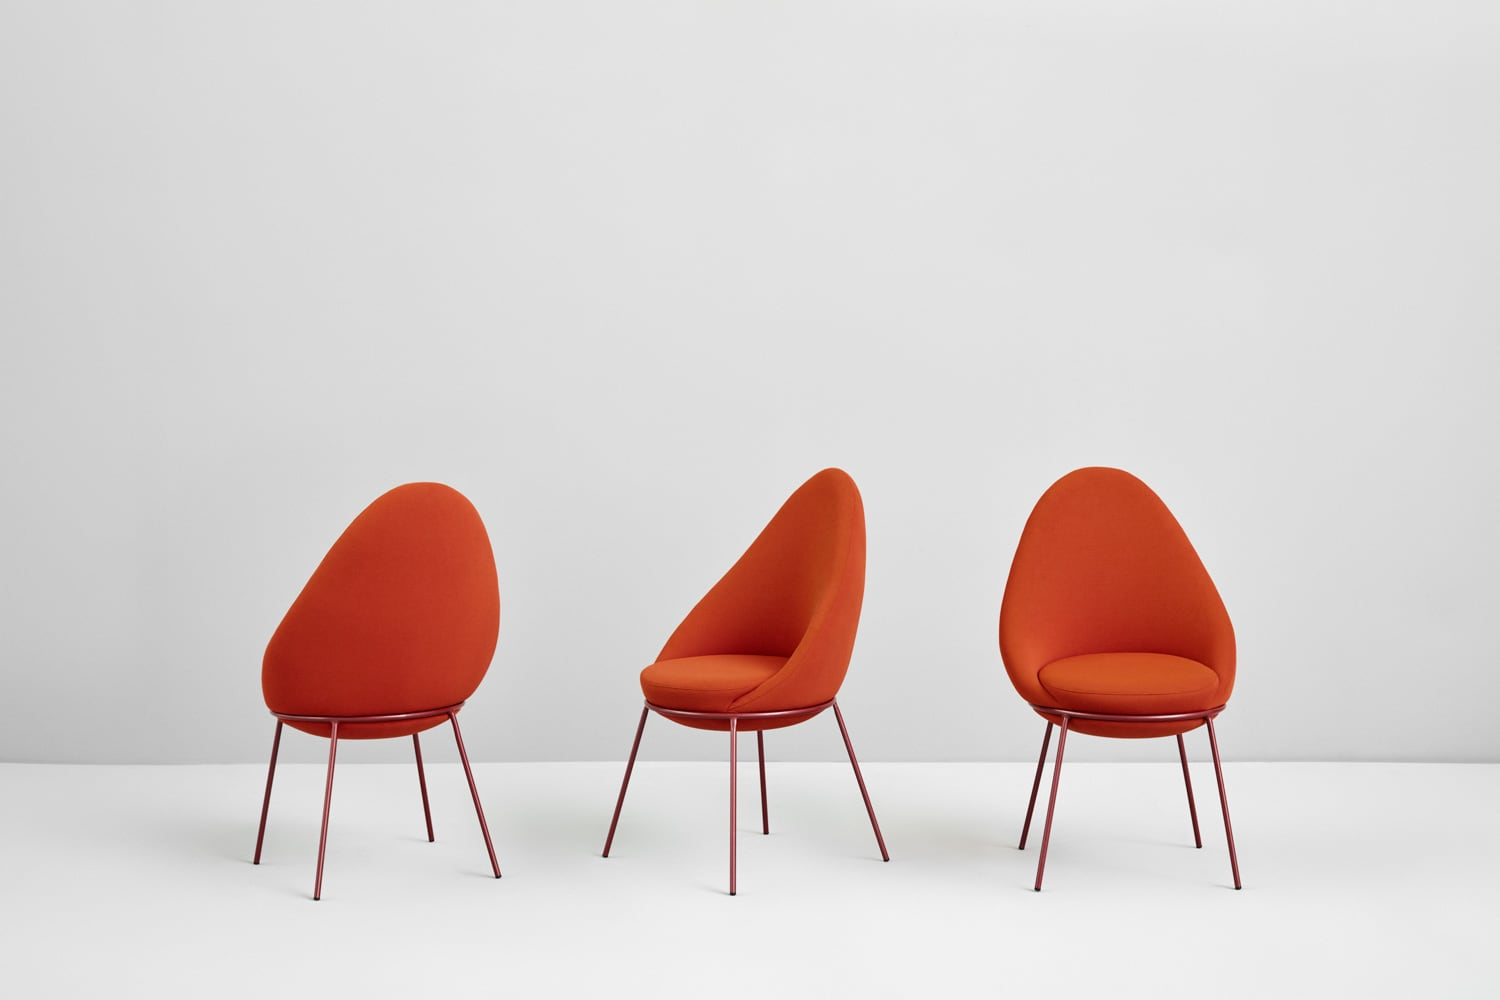 nest-chair-hospitality-interior-projects-furniture-contract